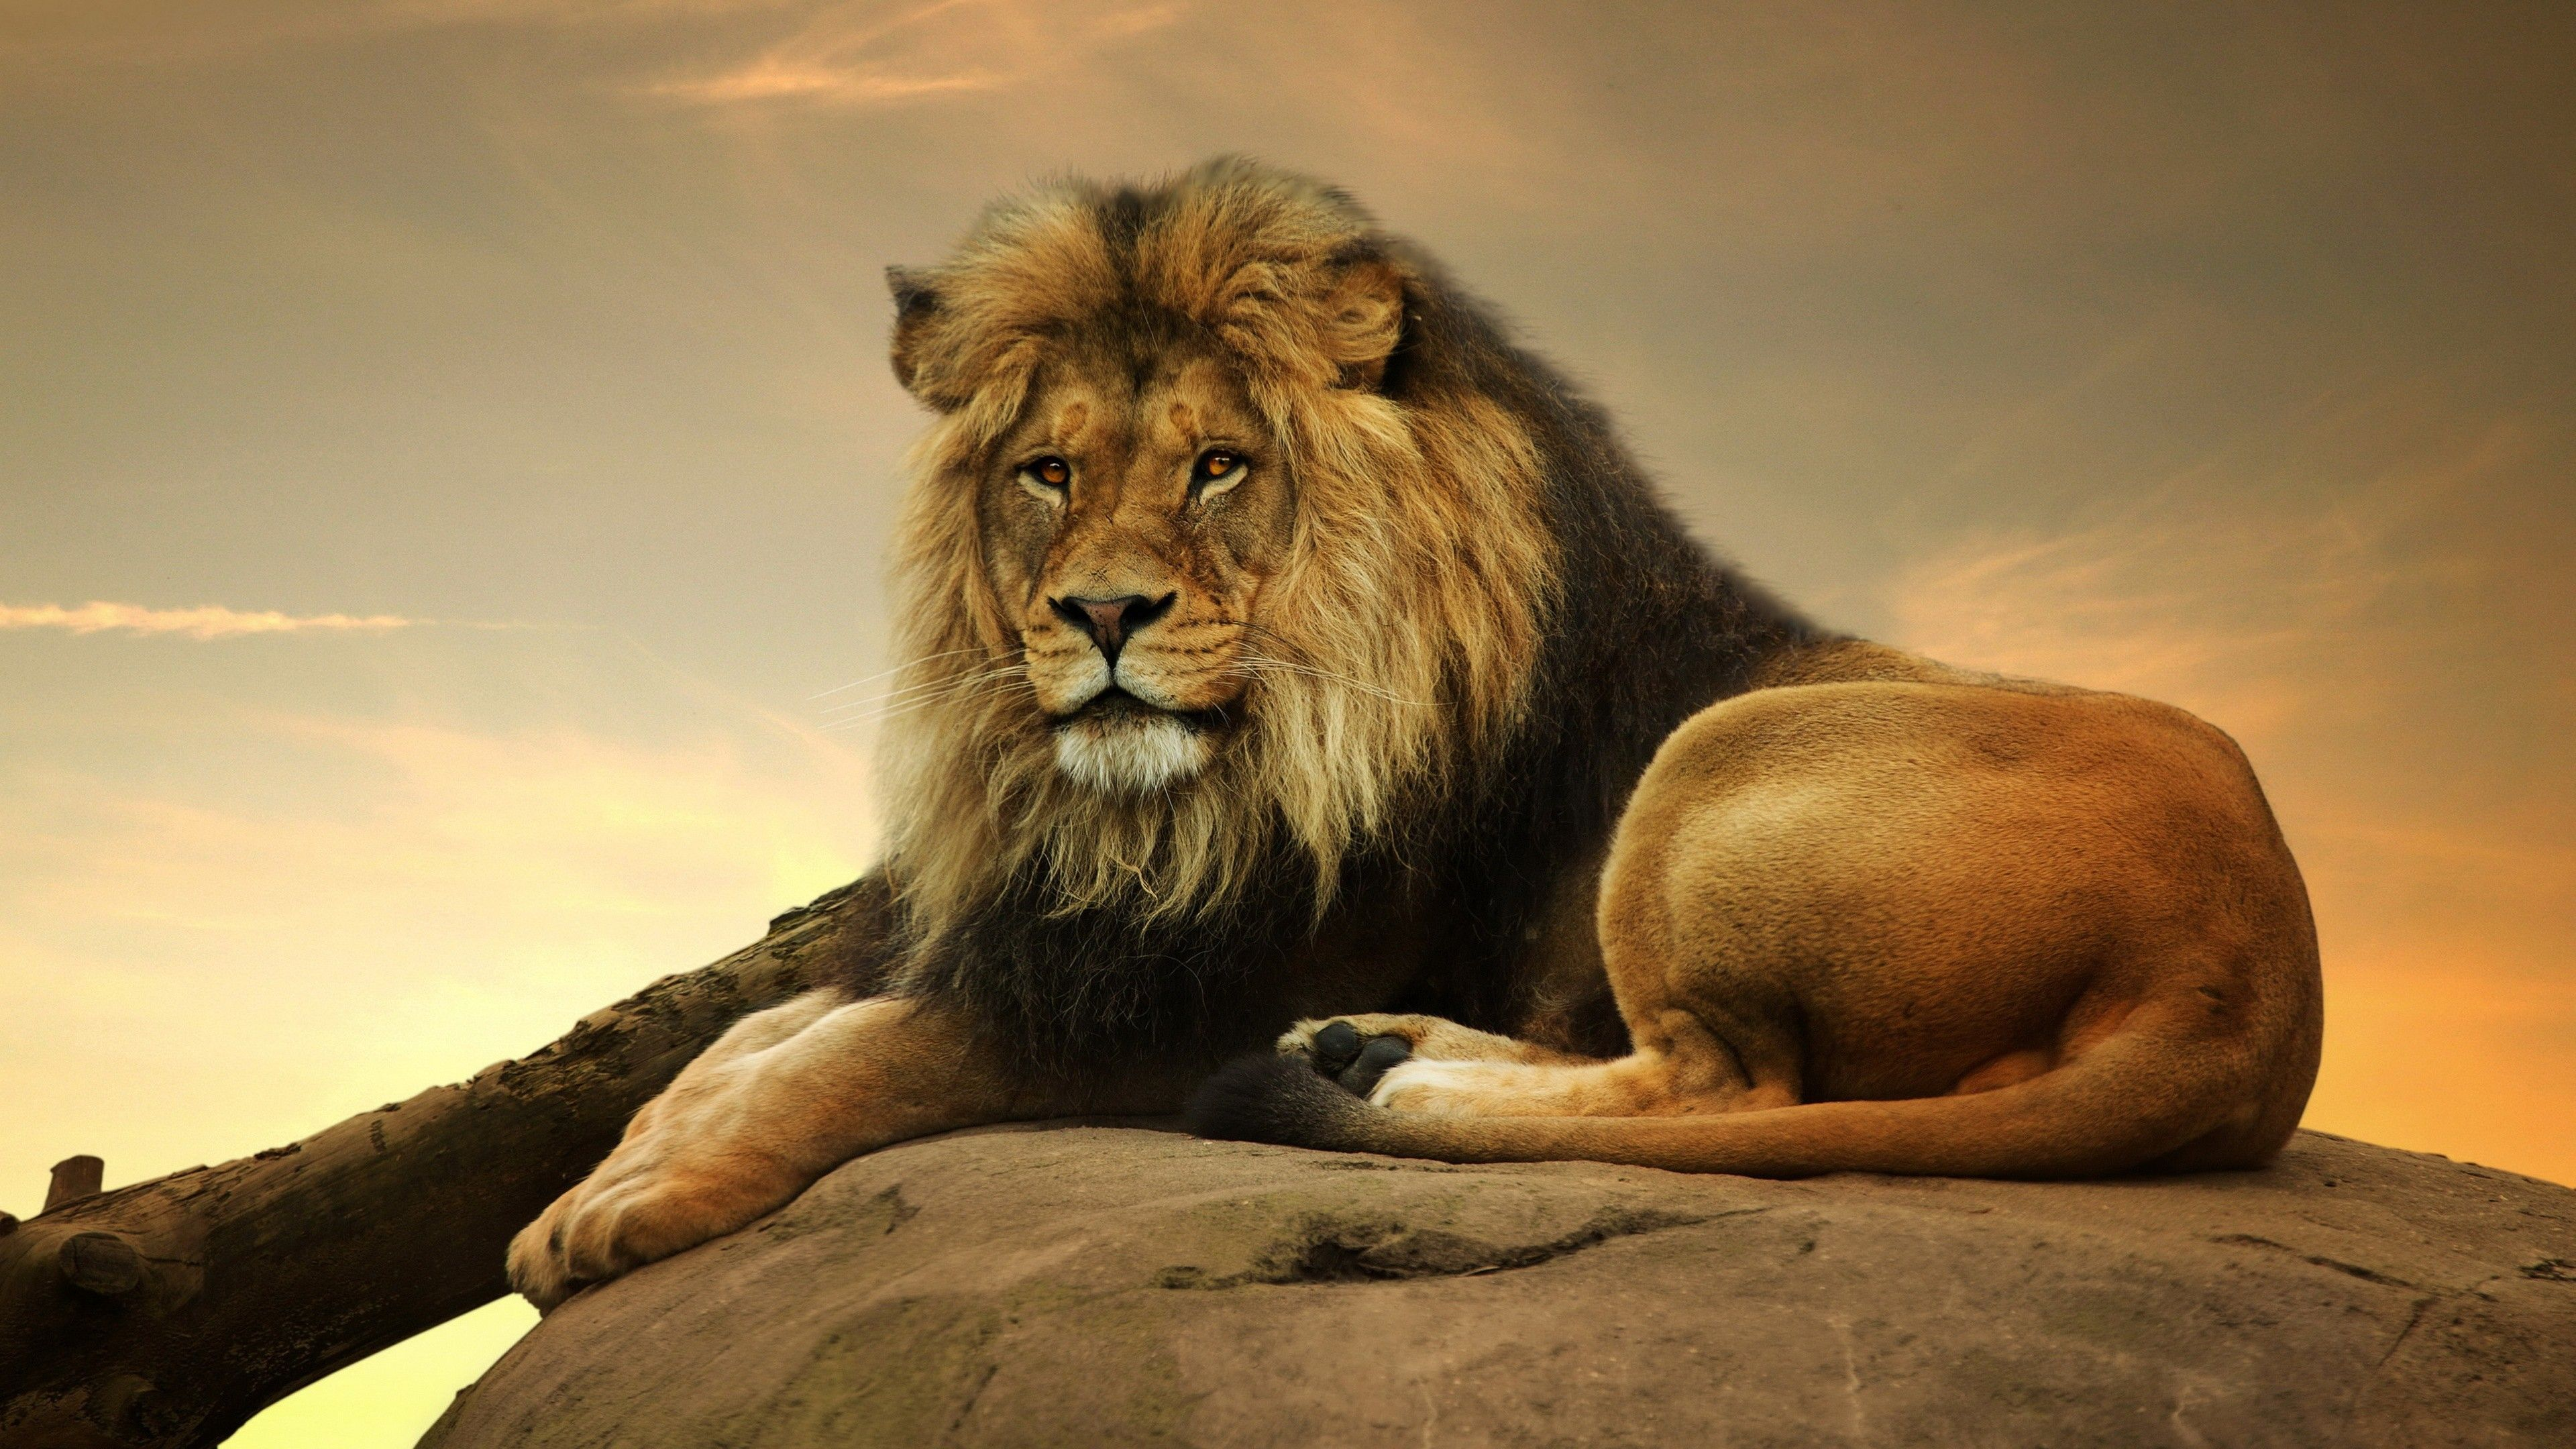 Res 3840x2160 Male Lion 4k Resolution Desktop Wallpaper Hd Background Wallpapers Amazing Cool Tablet Smart Phone 4k Hi In 2020 Male Lion Lion Painting Lion Pictures